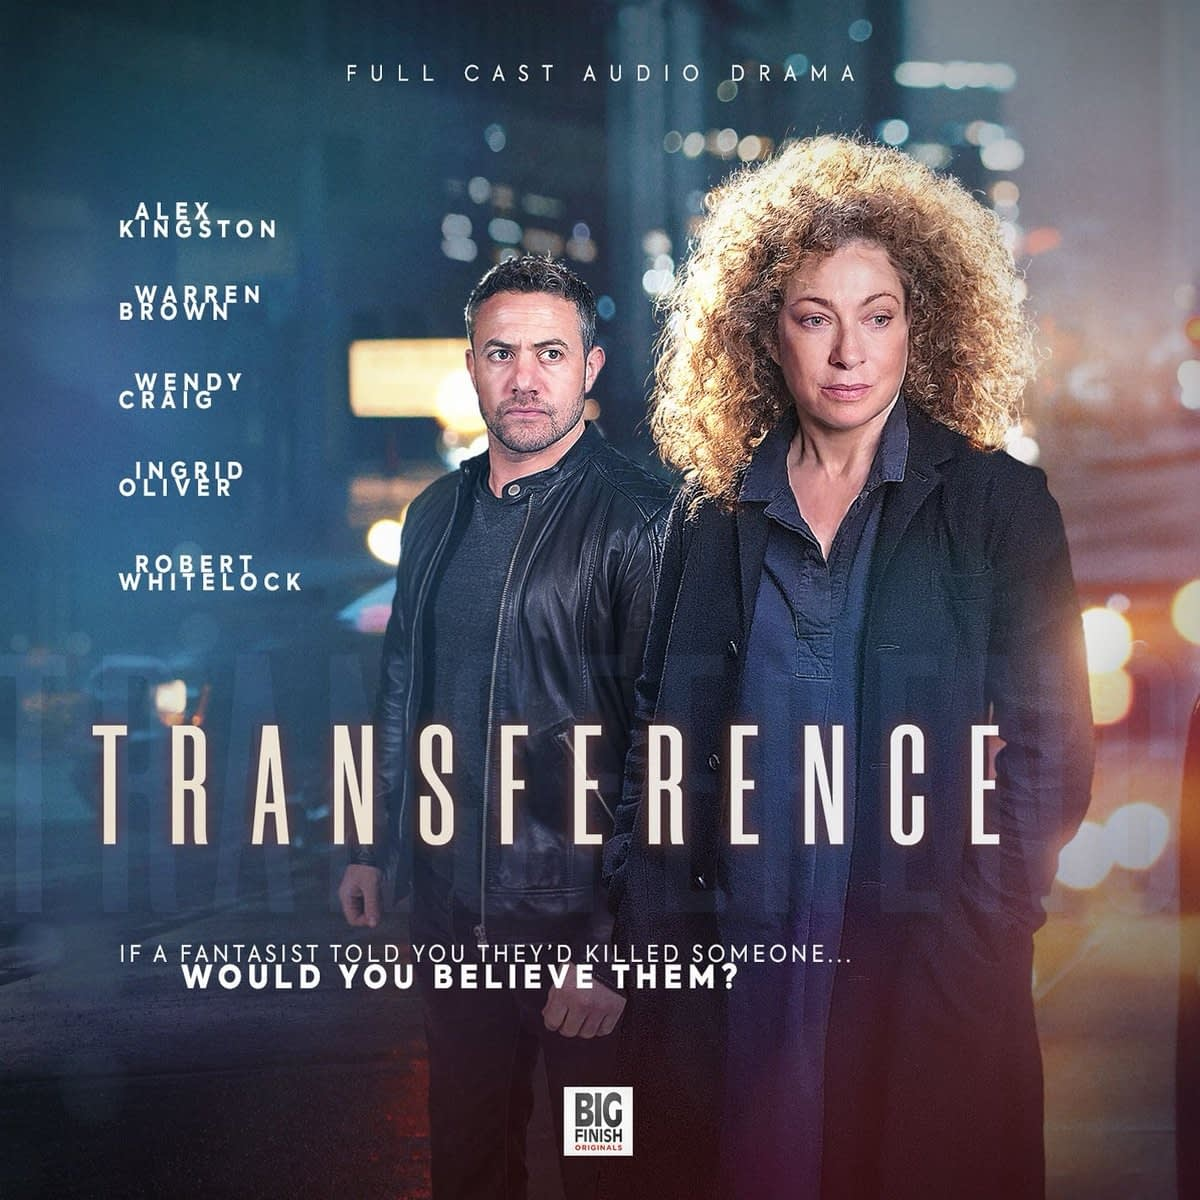 """""""Transference"""" starring Alex Kingston: A Fun but Flawed Hitchcockian Audio Thriller"""